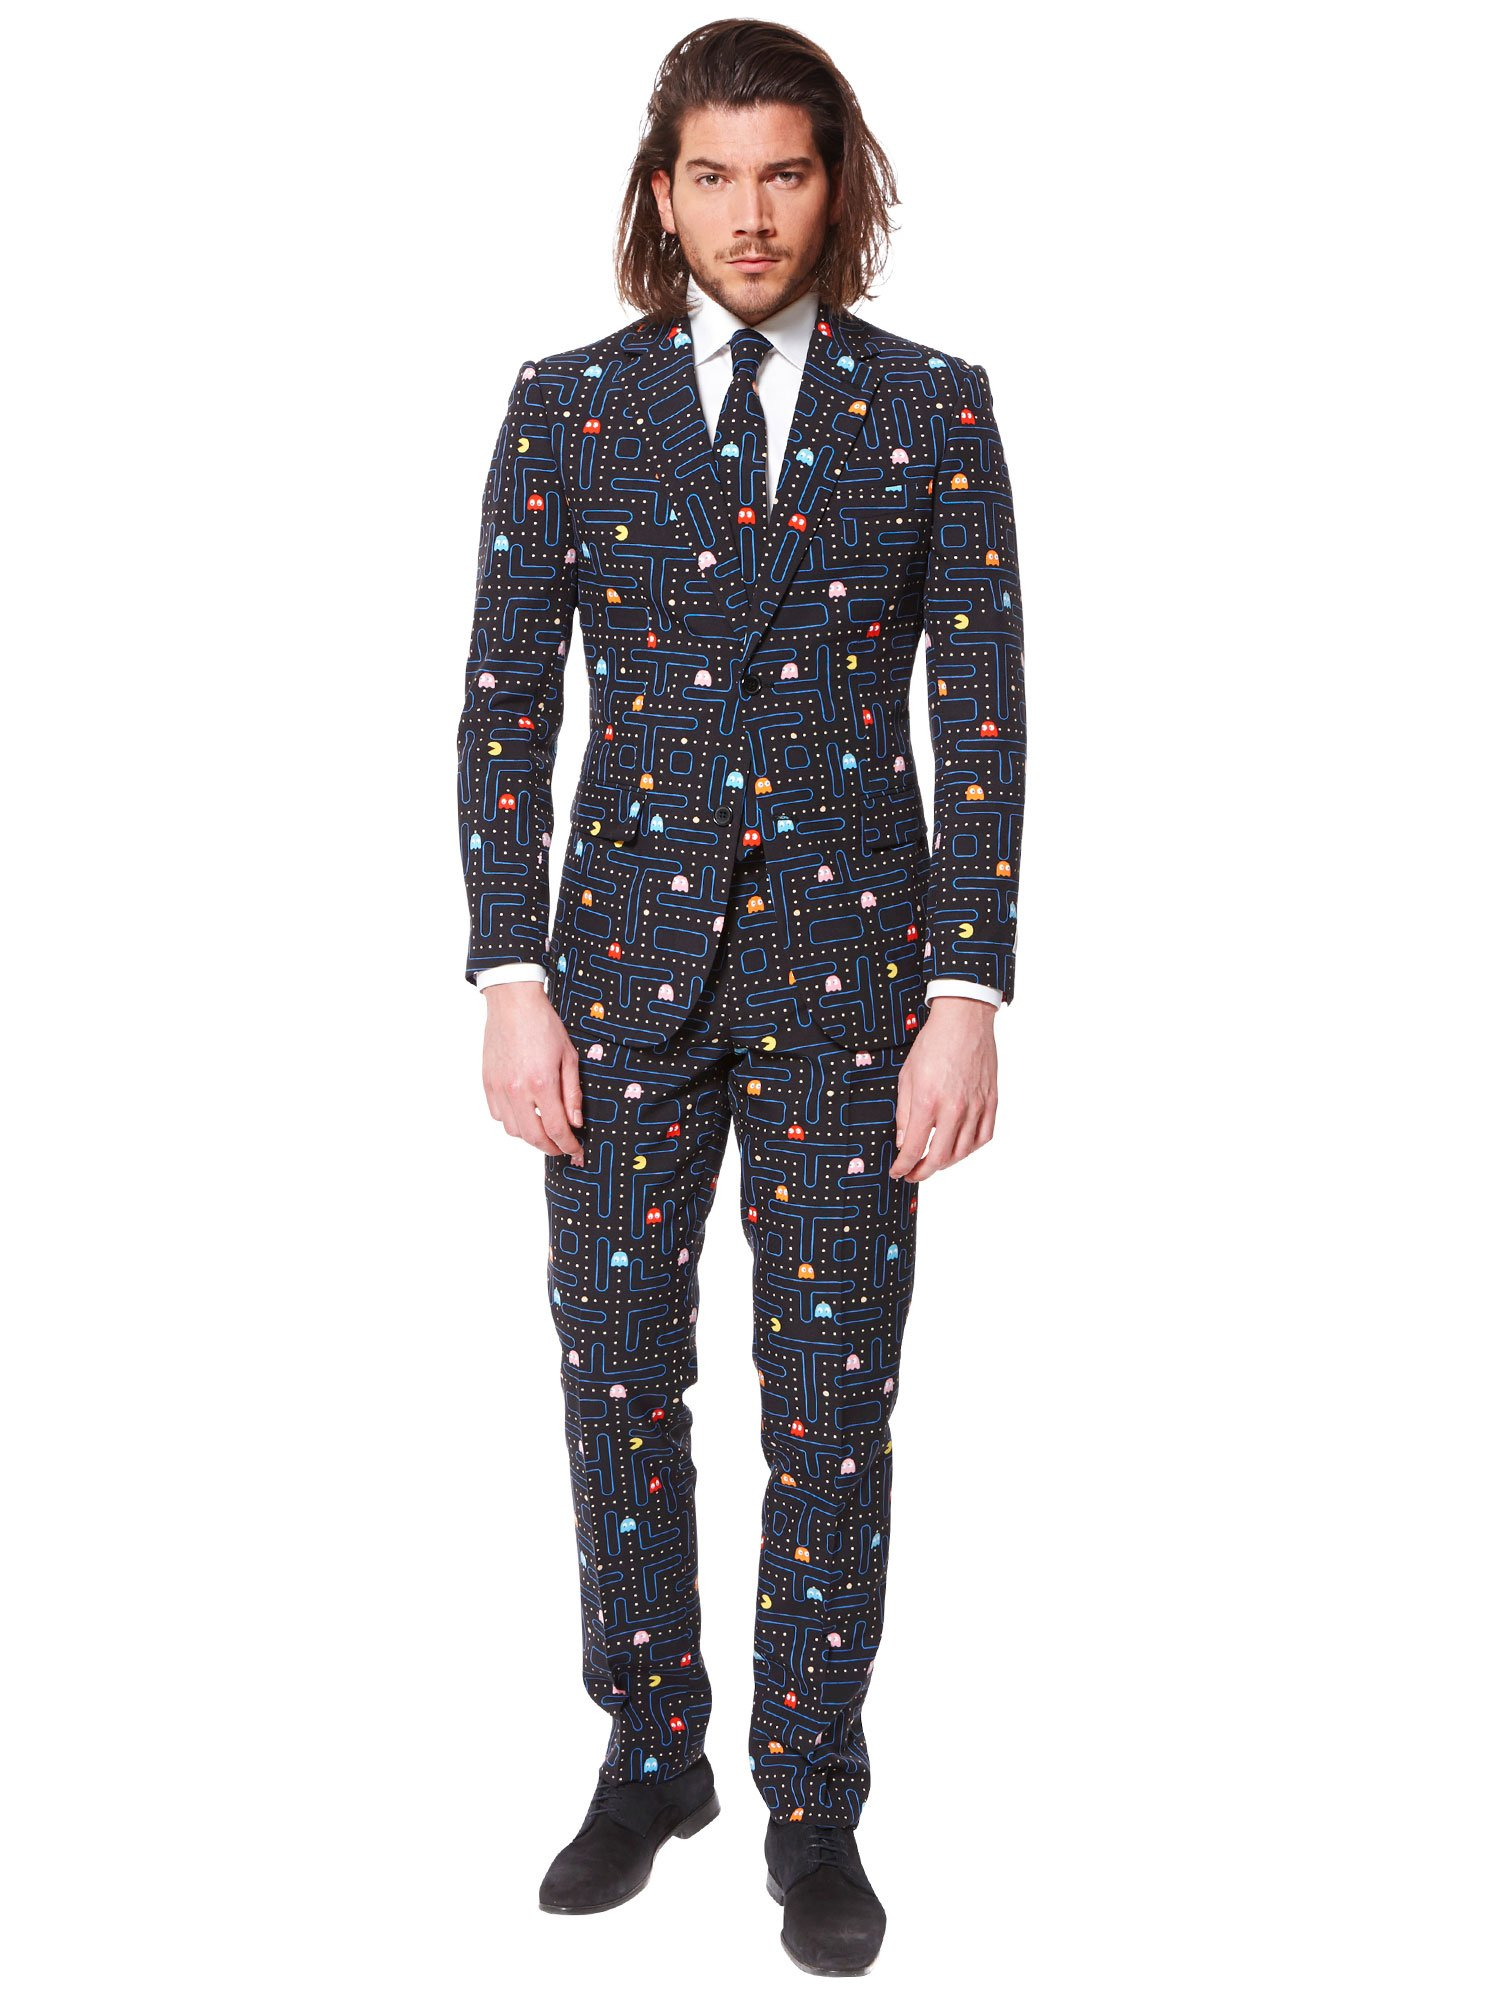 Opposuits Fancy Colored Suit For Men Now With Free Prom King and Prom Queen Sash,Pac-manTM,US44 by Opposuits (Image #3)